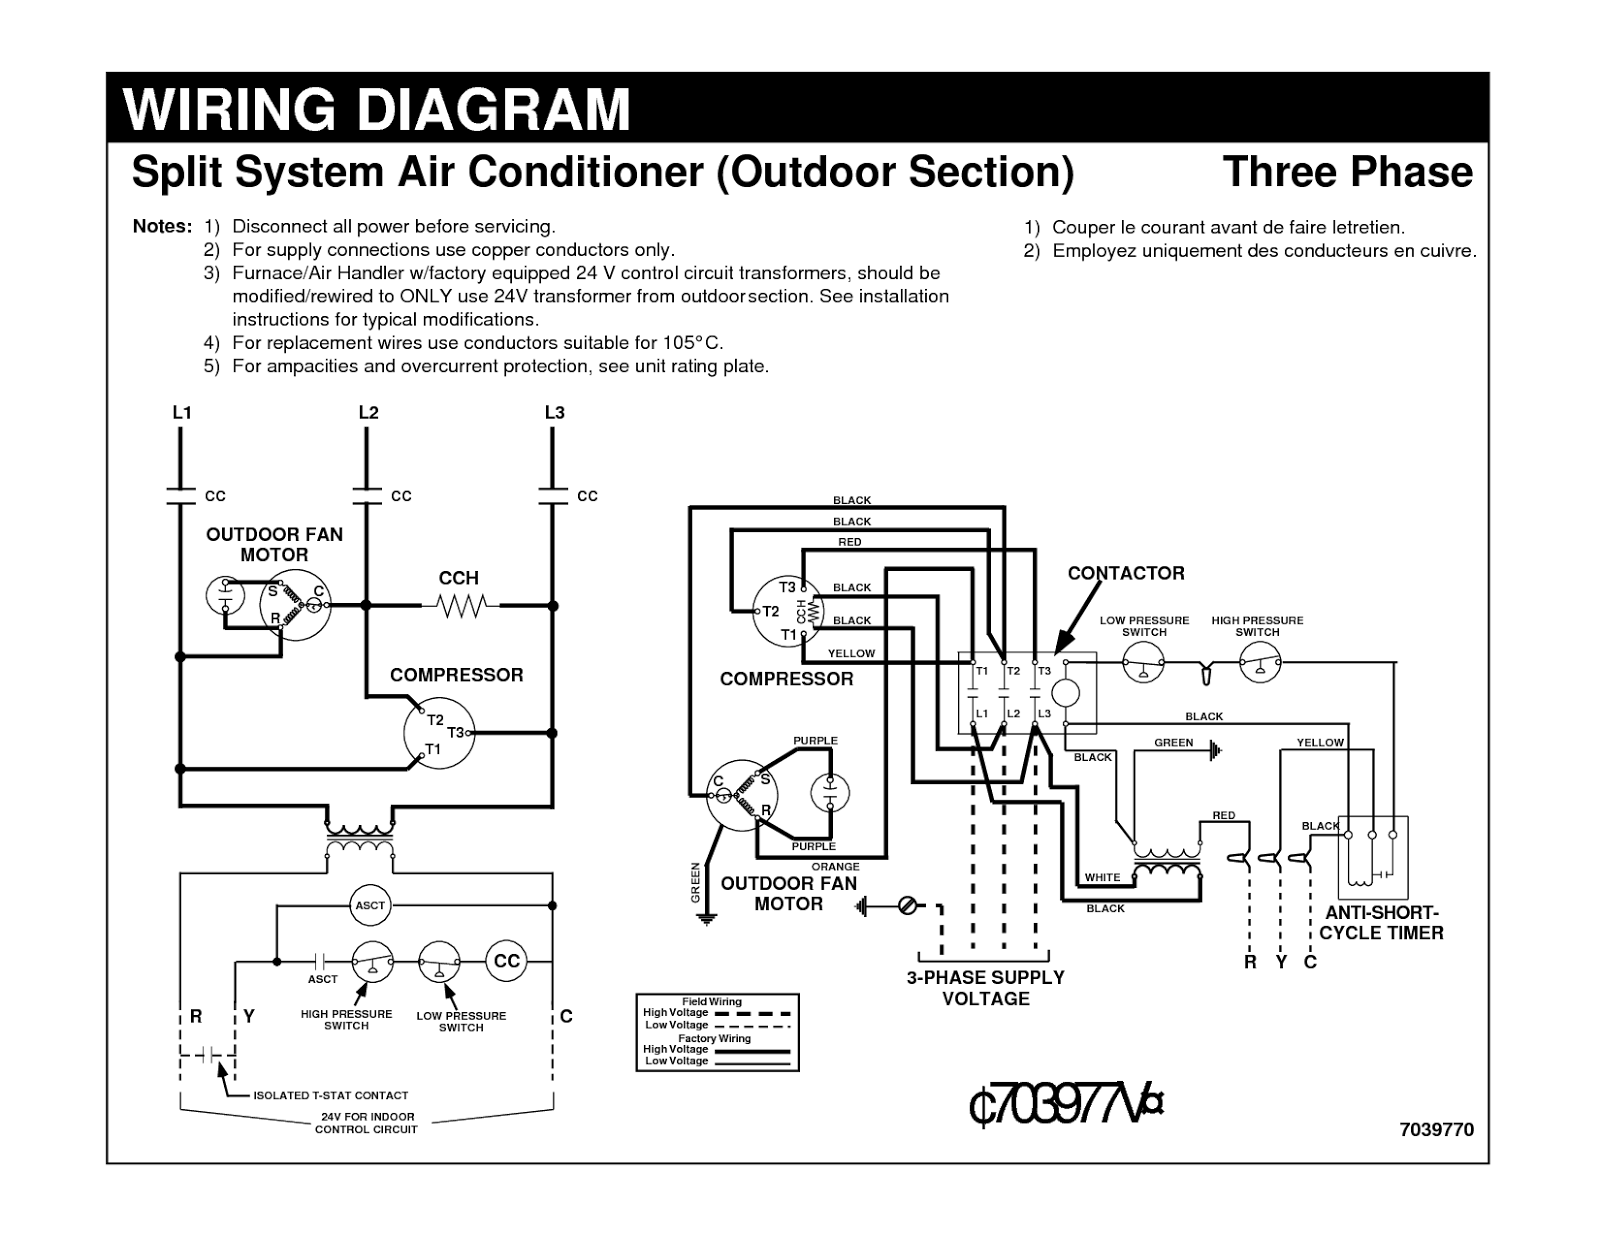 wiring+diagram+in+the+user+manual electrical wiring diagrams for air conditioning systems part one different types of wiring diagrams at crackthecode.co